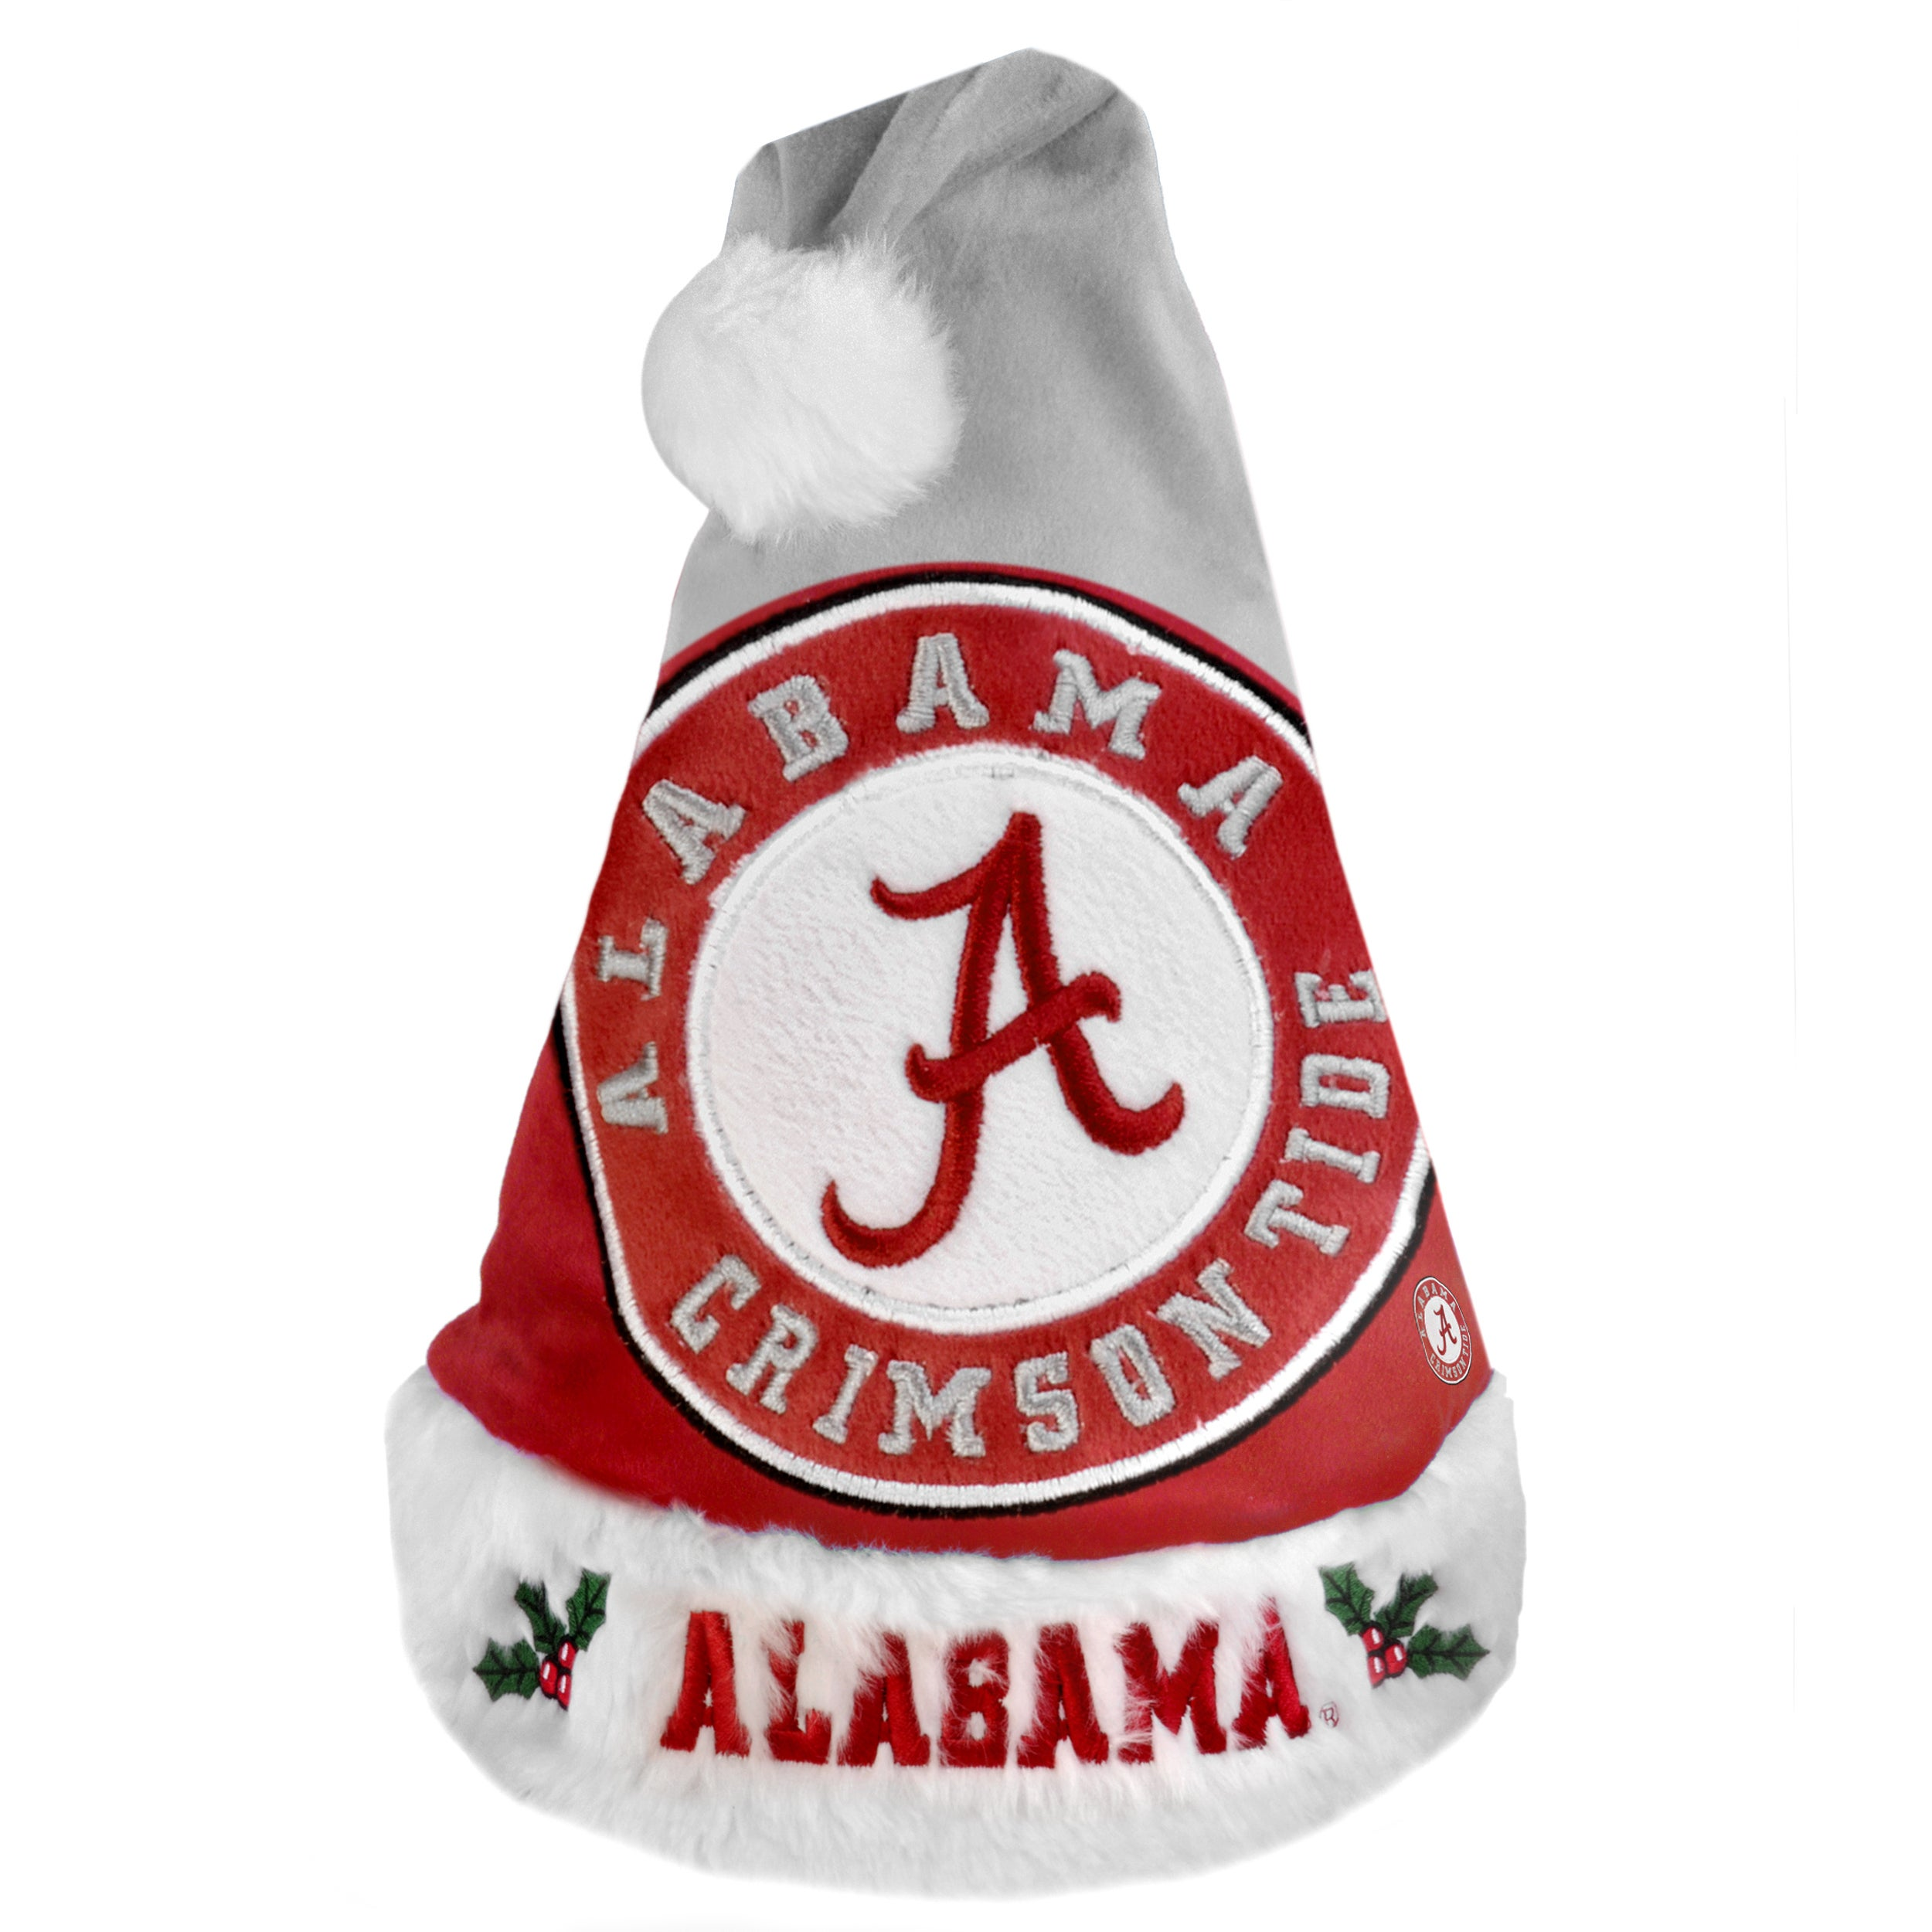 Alabama Crimson Tide 2011 Colorblock Runoff Logo Santa Hat